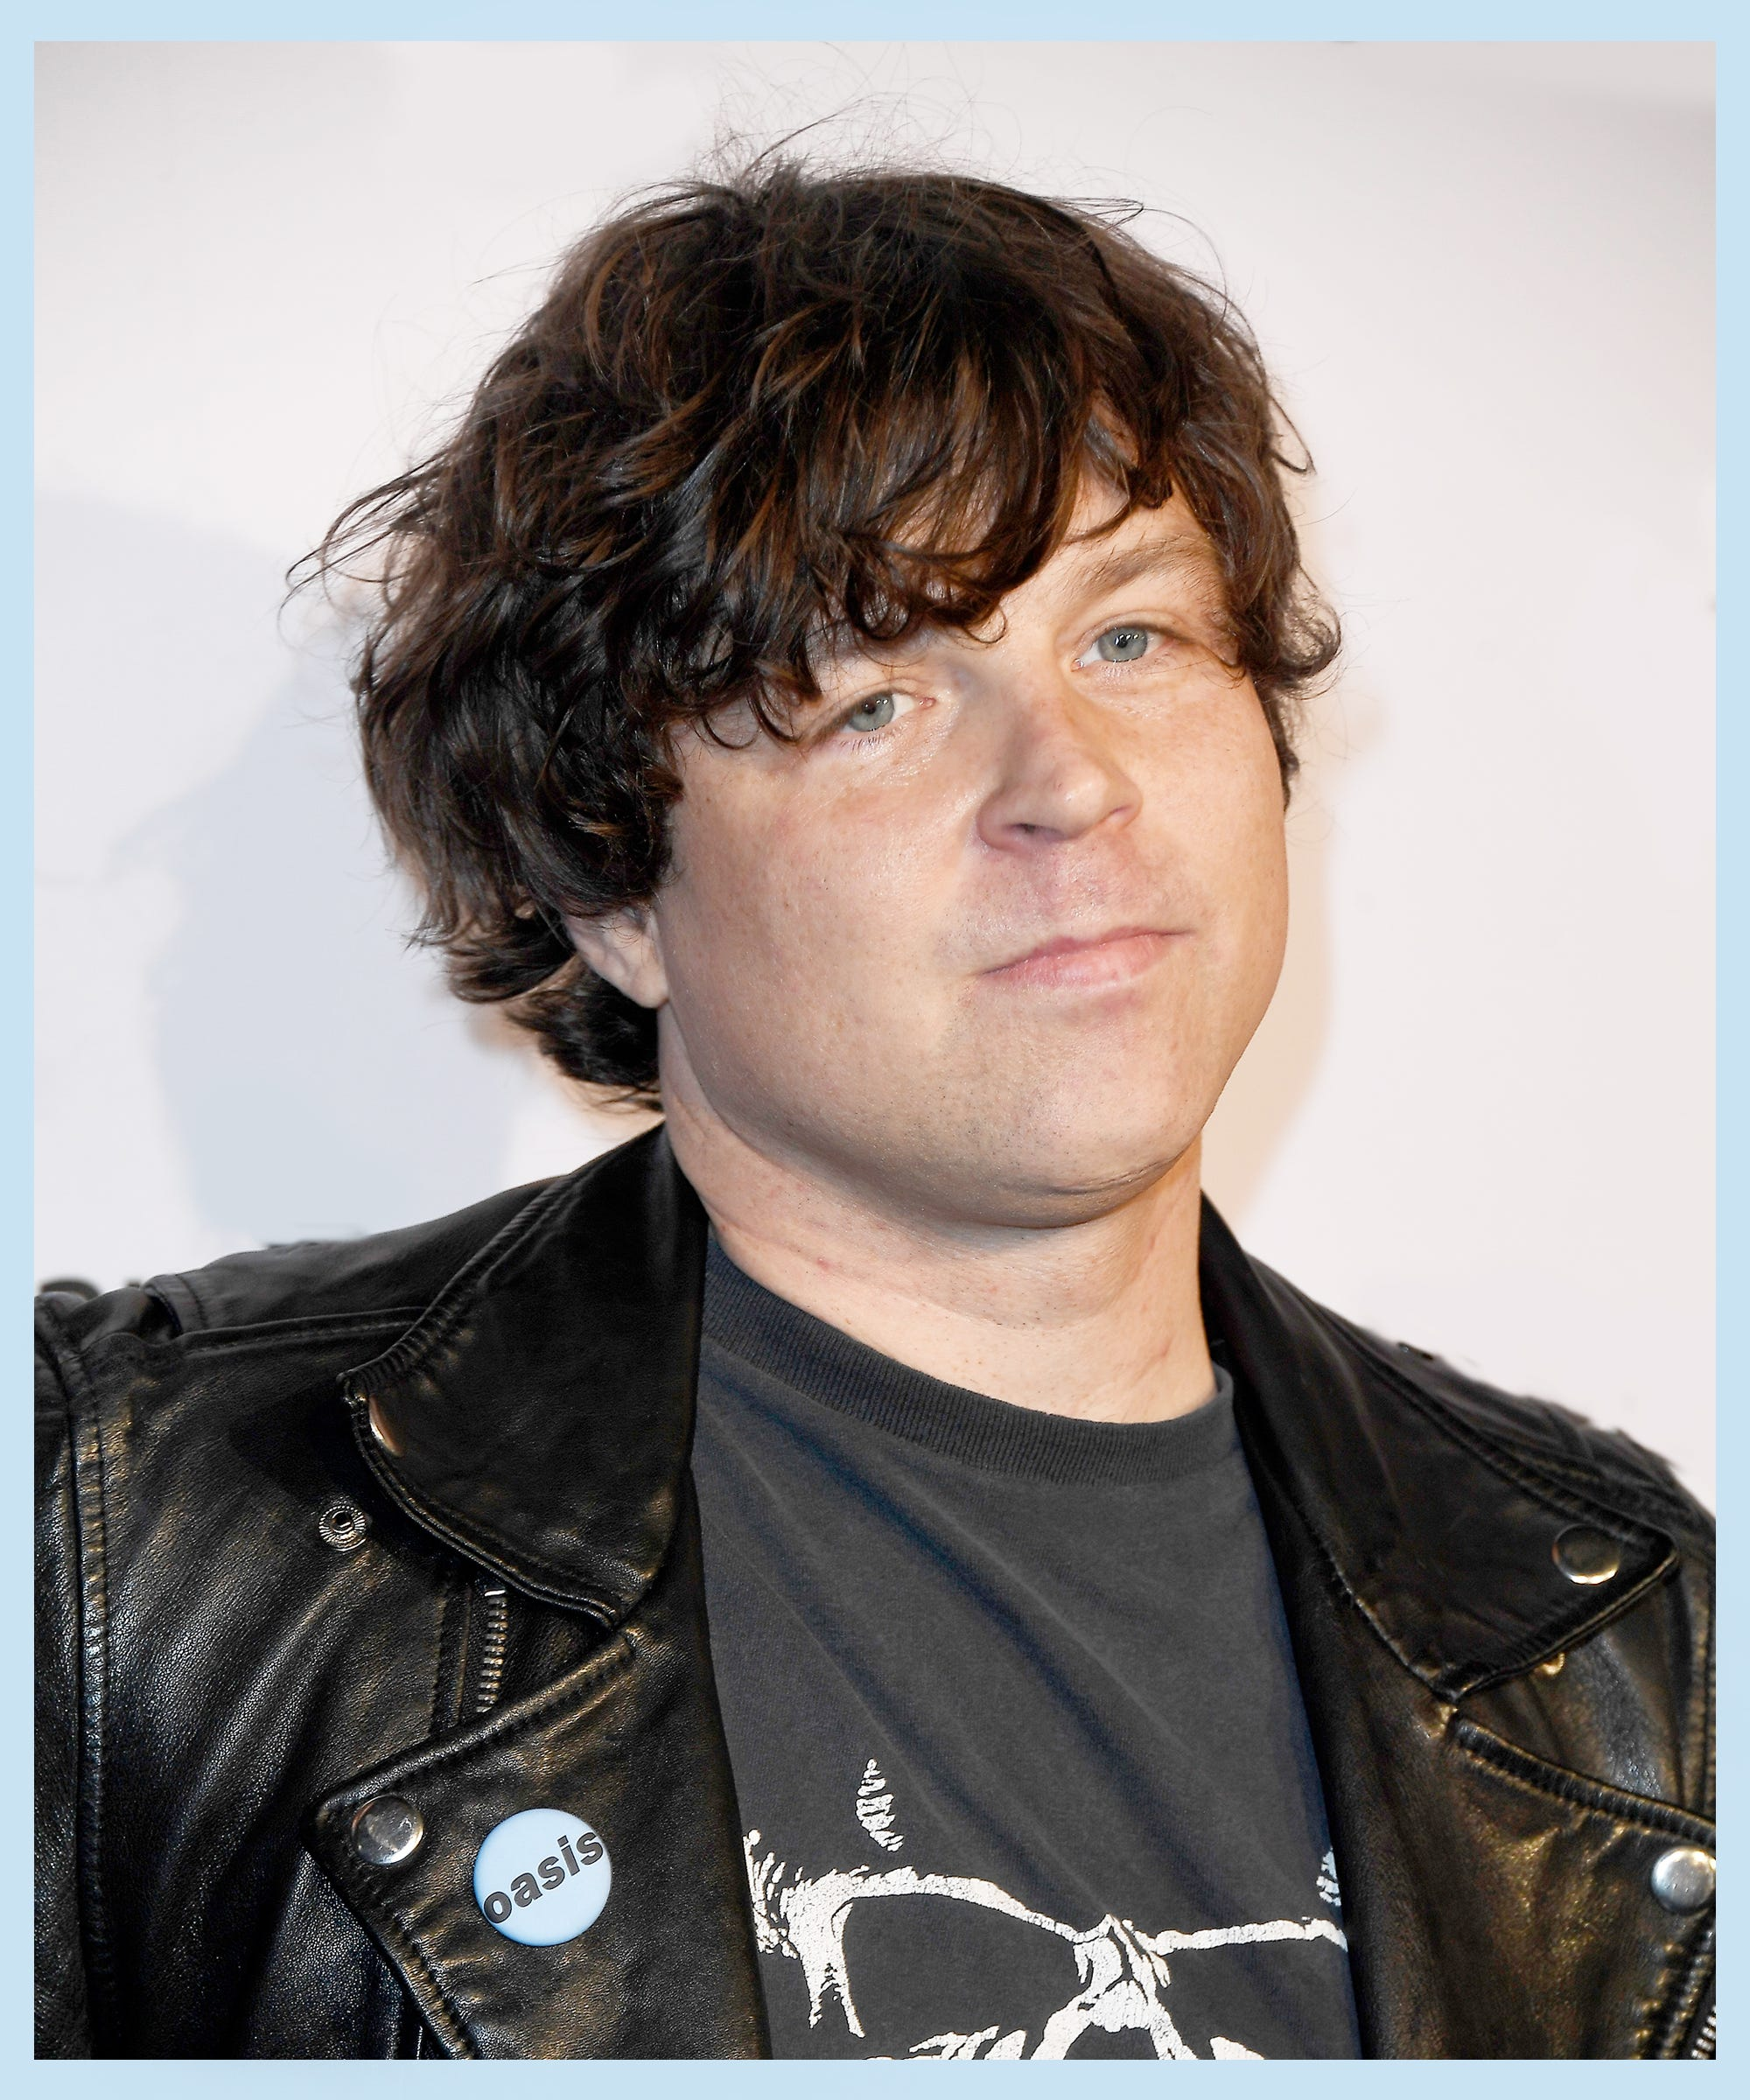 Ryan Adams Speaks For The First Time Since Sexual Misconduct Allegations